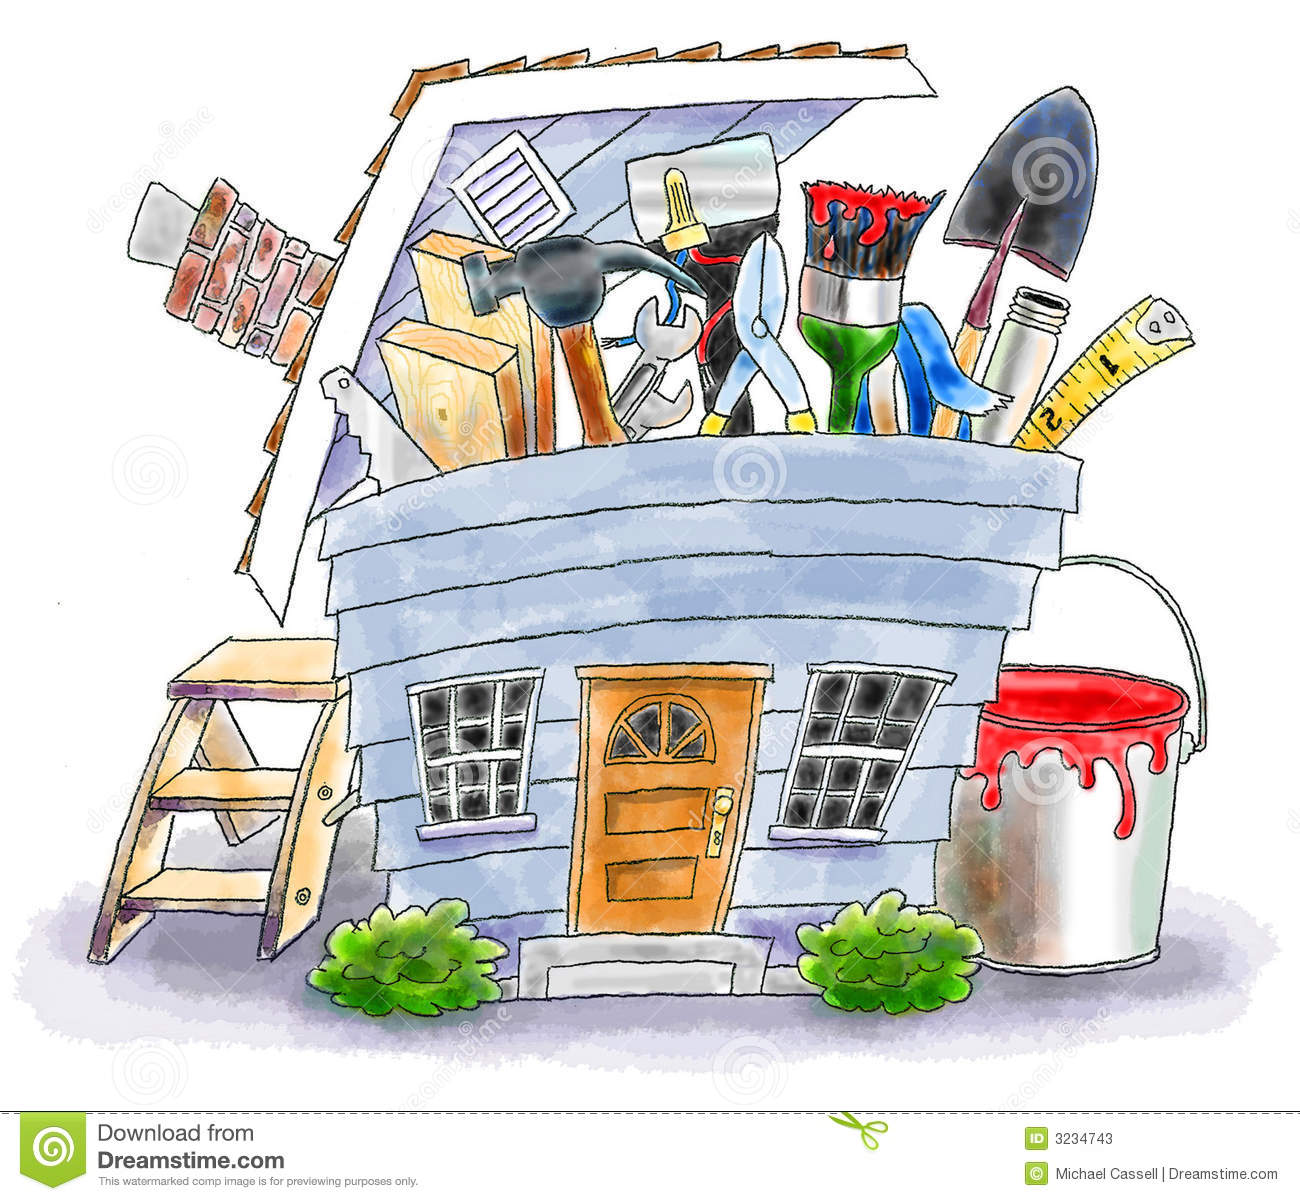 Home Improvement Stock Photos - Image: 3234743